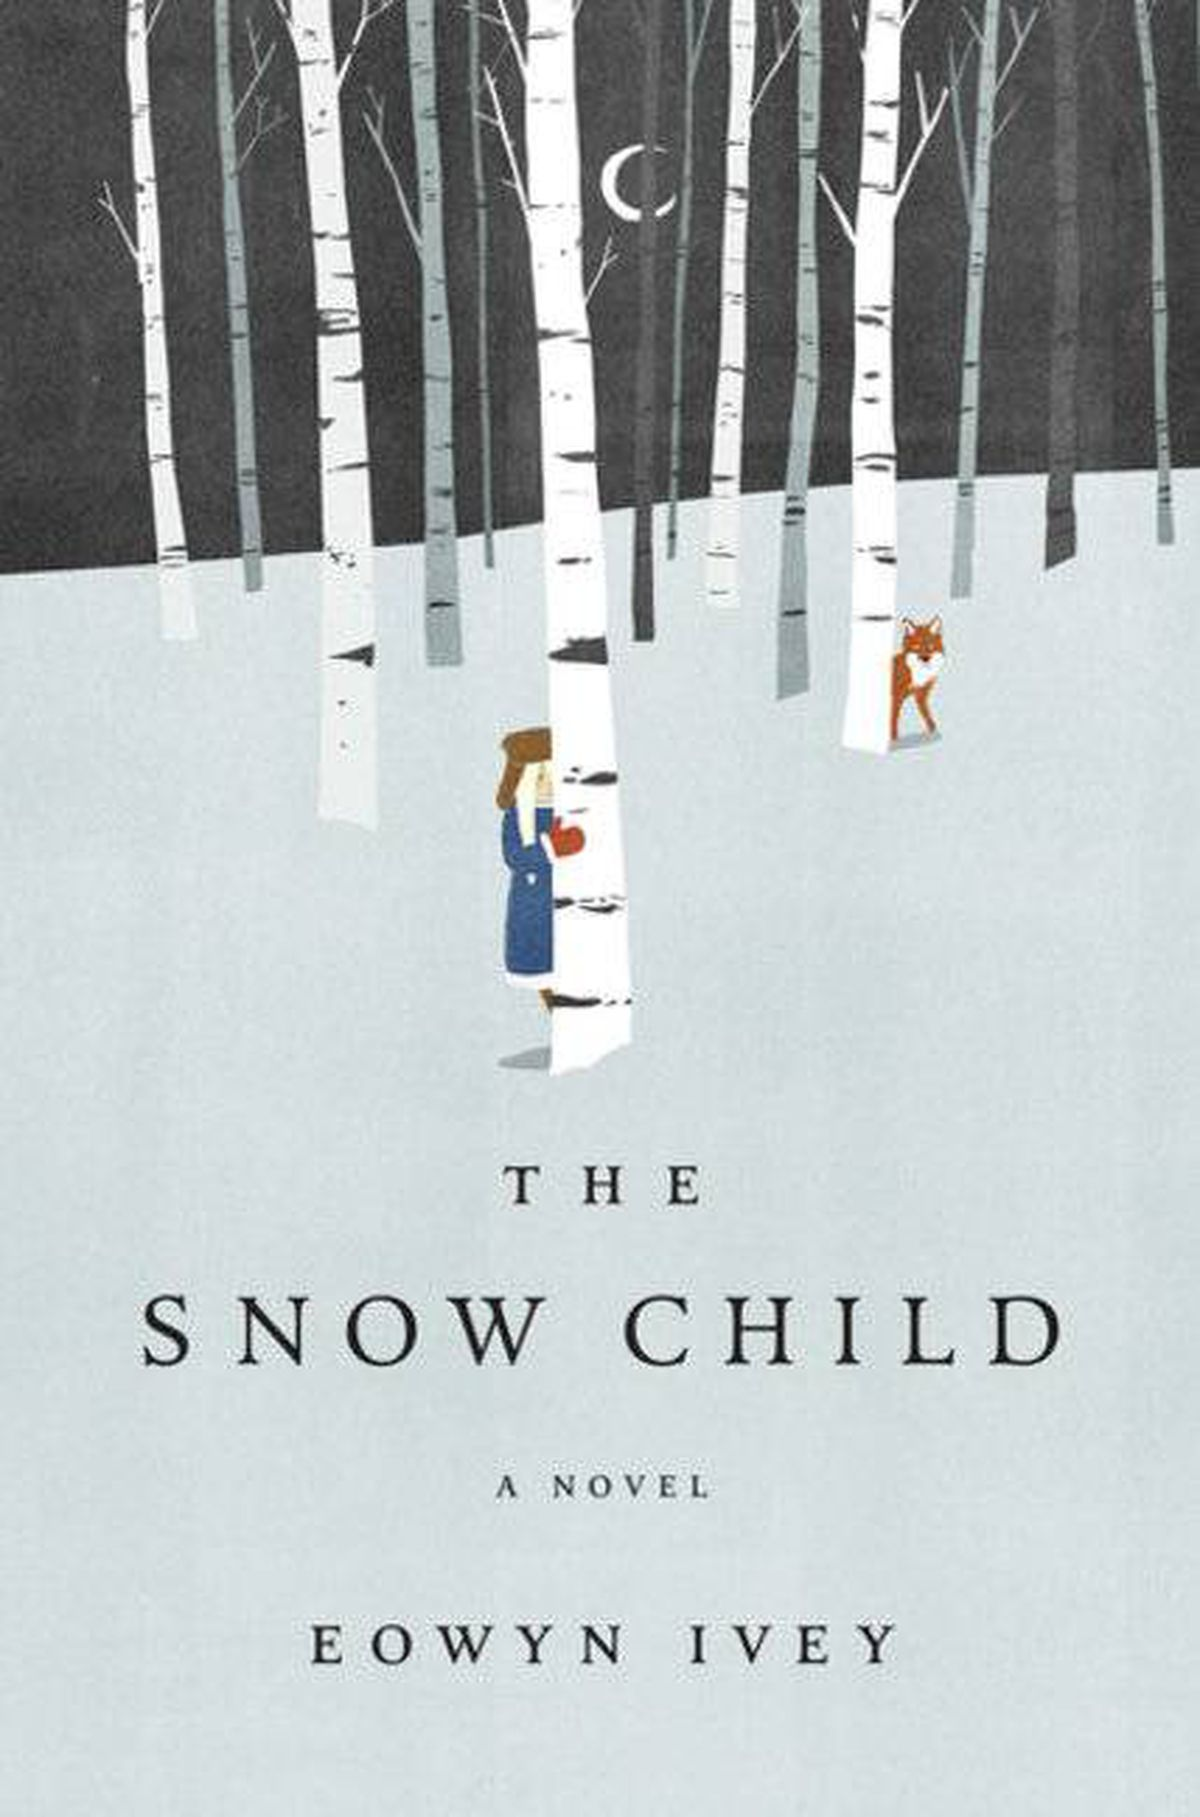 The Snow Child. By Eowyn Ivey, Reagan Arthur/Little, Brown, 388 pages, $27.99